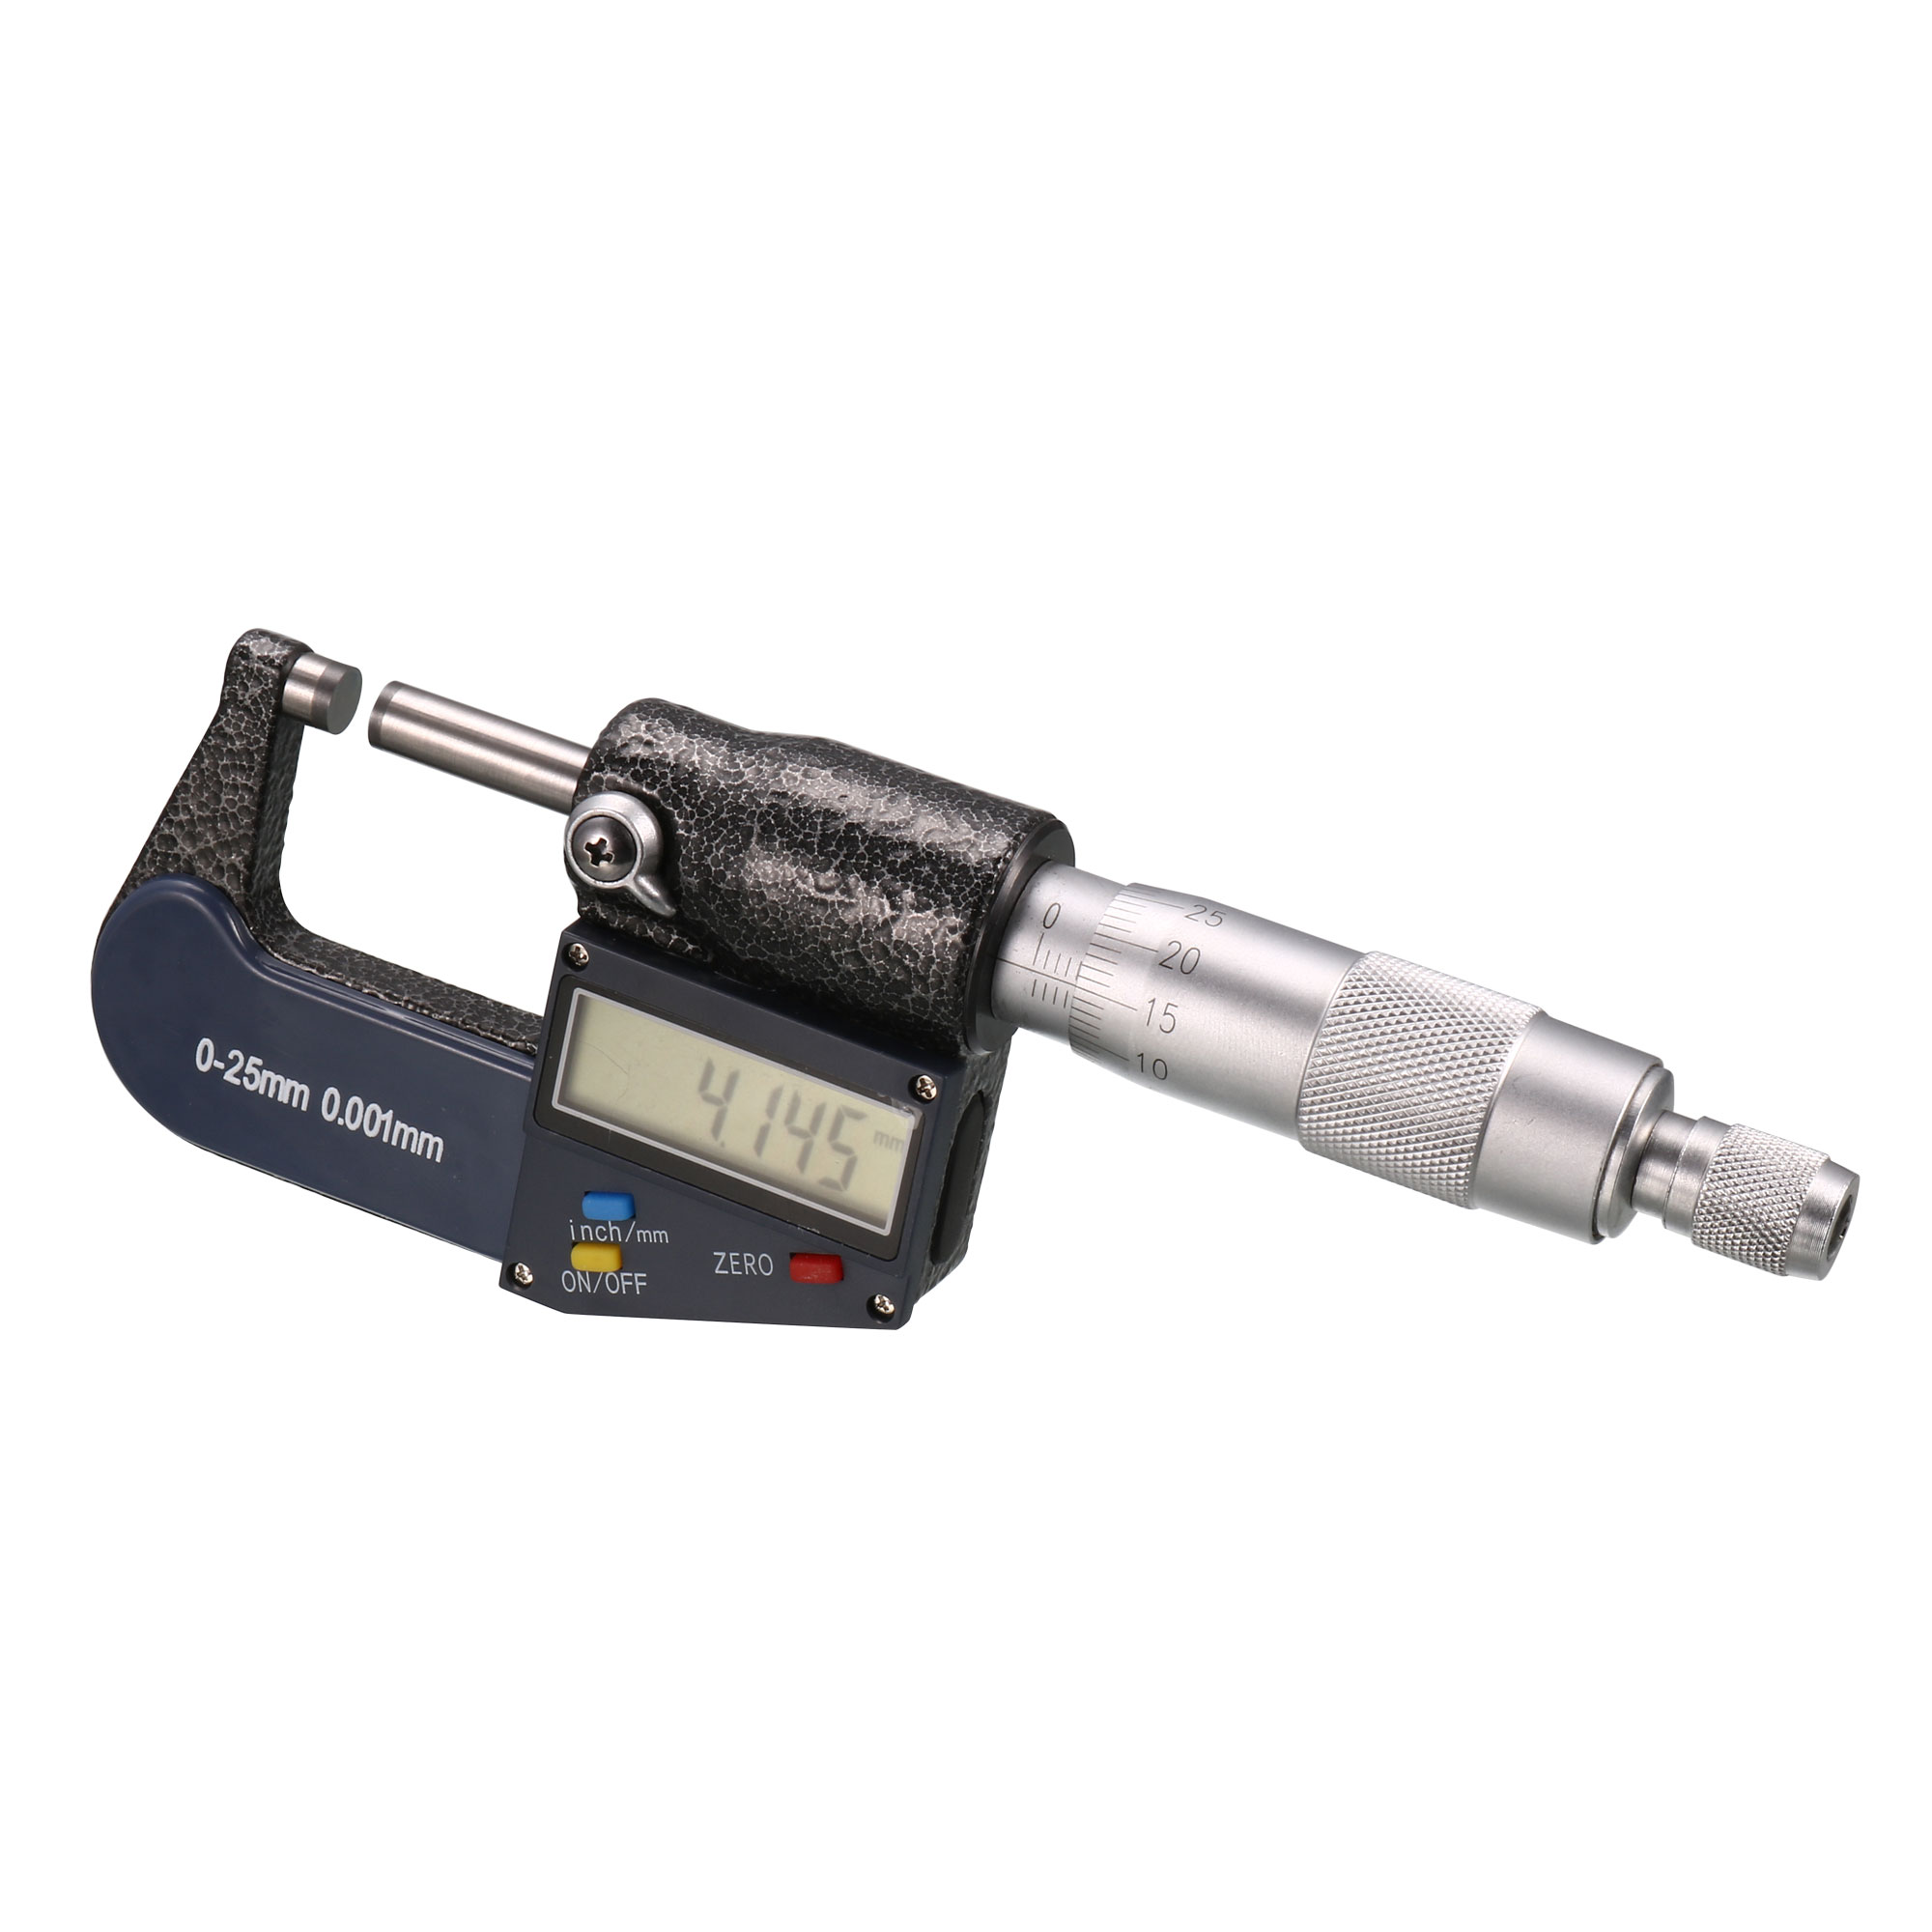 1-inch/25mm Digital Digimatic Outside Micrometer w Calibration, Electronic LCD Display